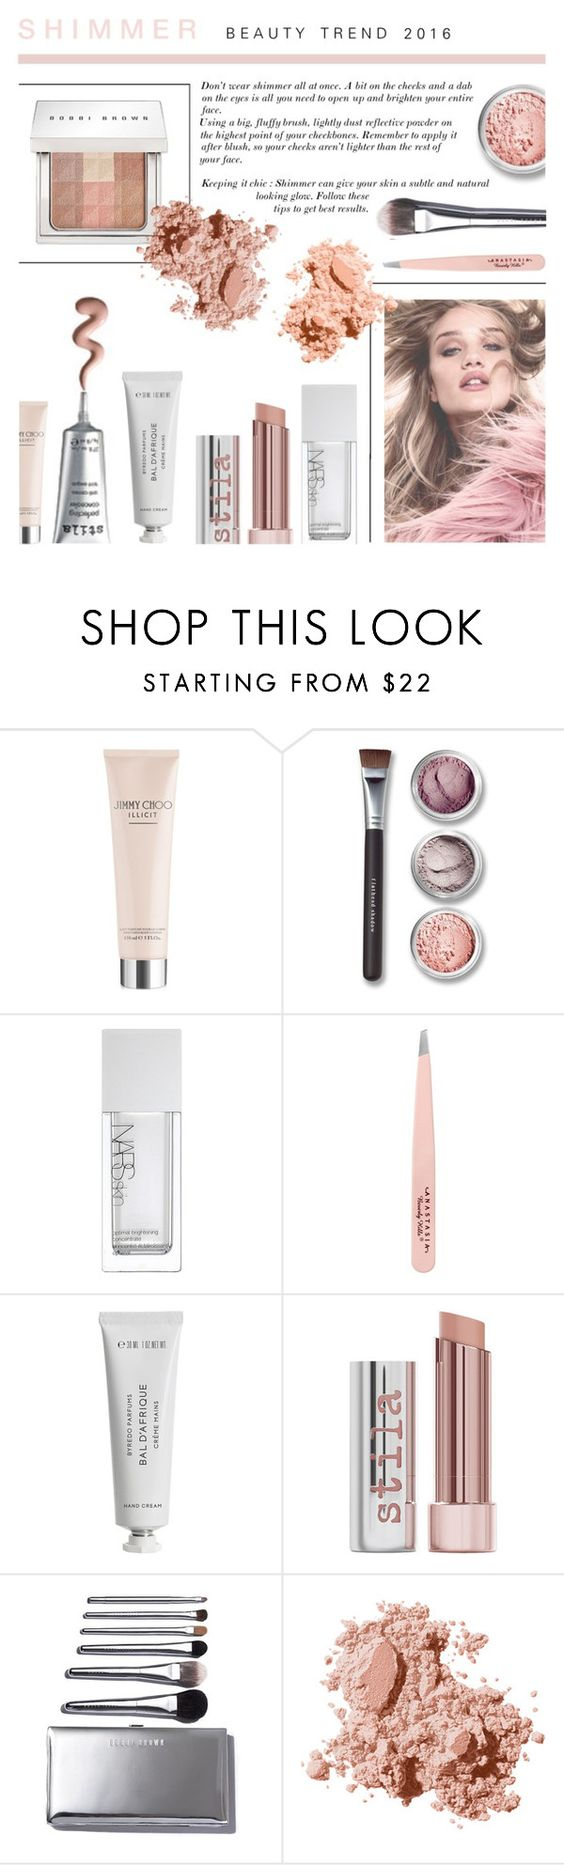 """""""Shimmer Beauty Trend - Pinks"""" by rachaelselina ❤ liked on Polyvore featuring beauty, Jimmy Choo, Bare Escentuals, NARS Cosmetics, Anastasia Beverly Hills, Byredo, Stila and Bobbi Brown Cosmetics"""